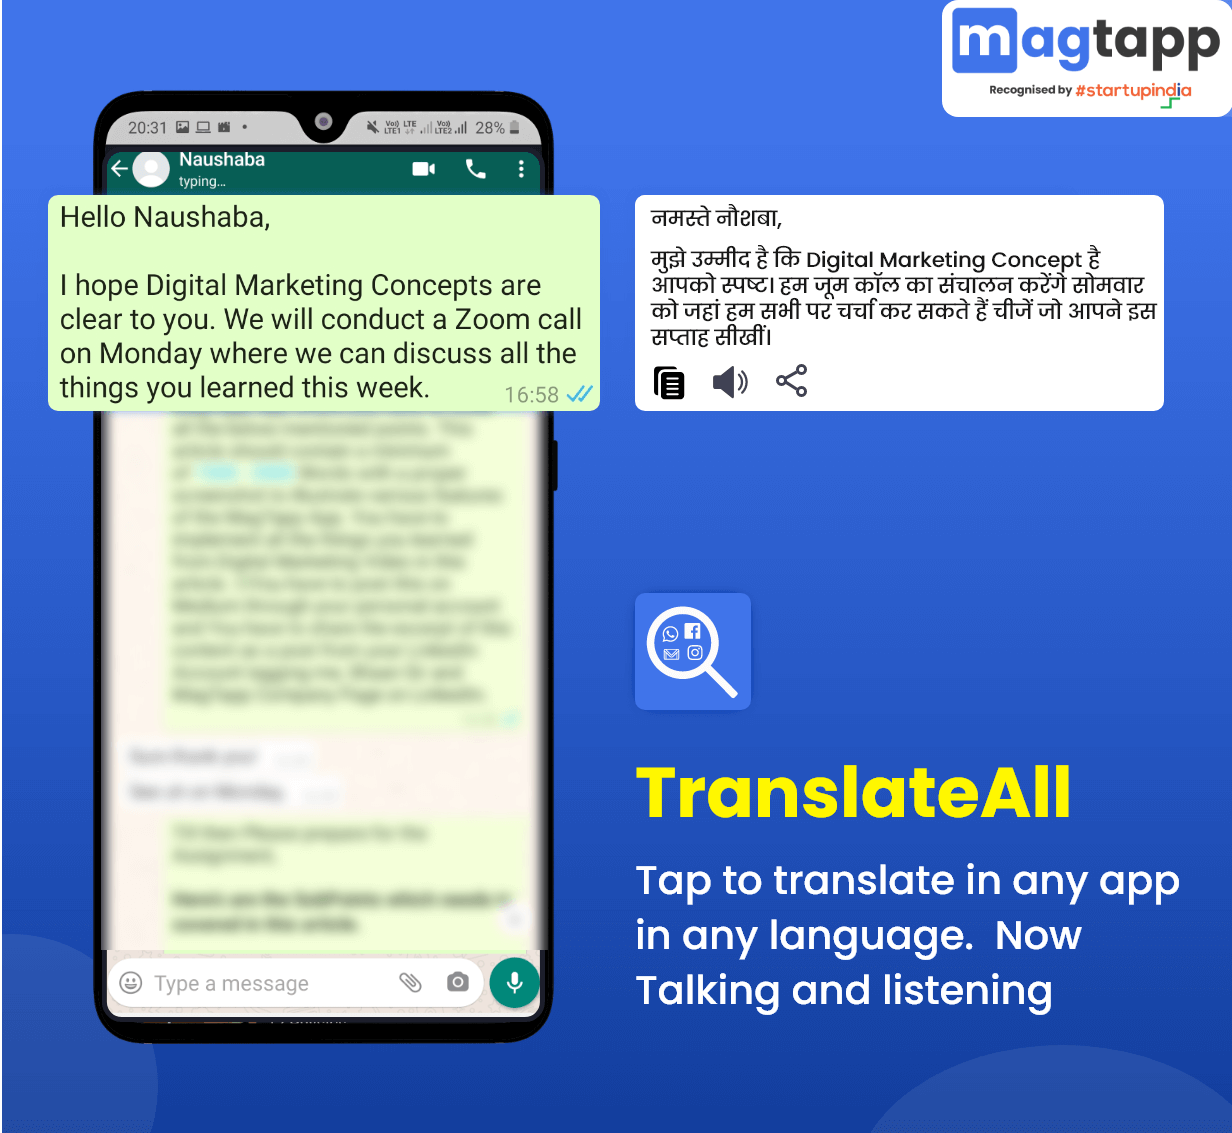 TranslateAll by MagTapp works on any app installed in your phone.